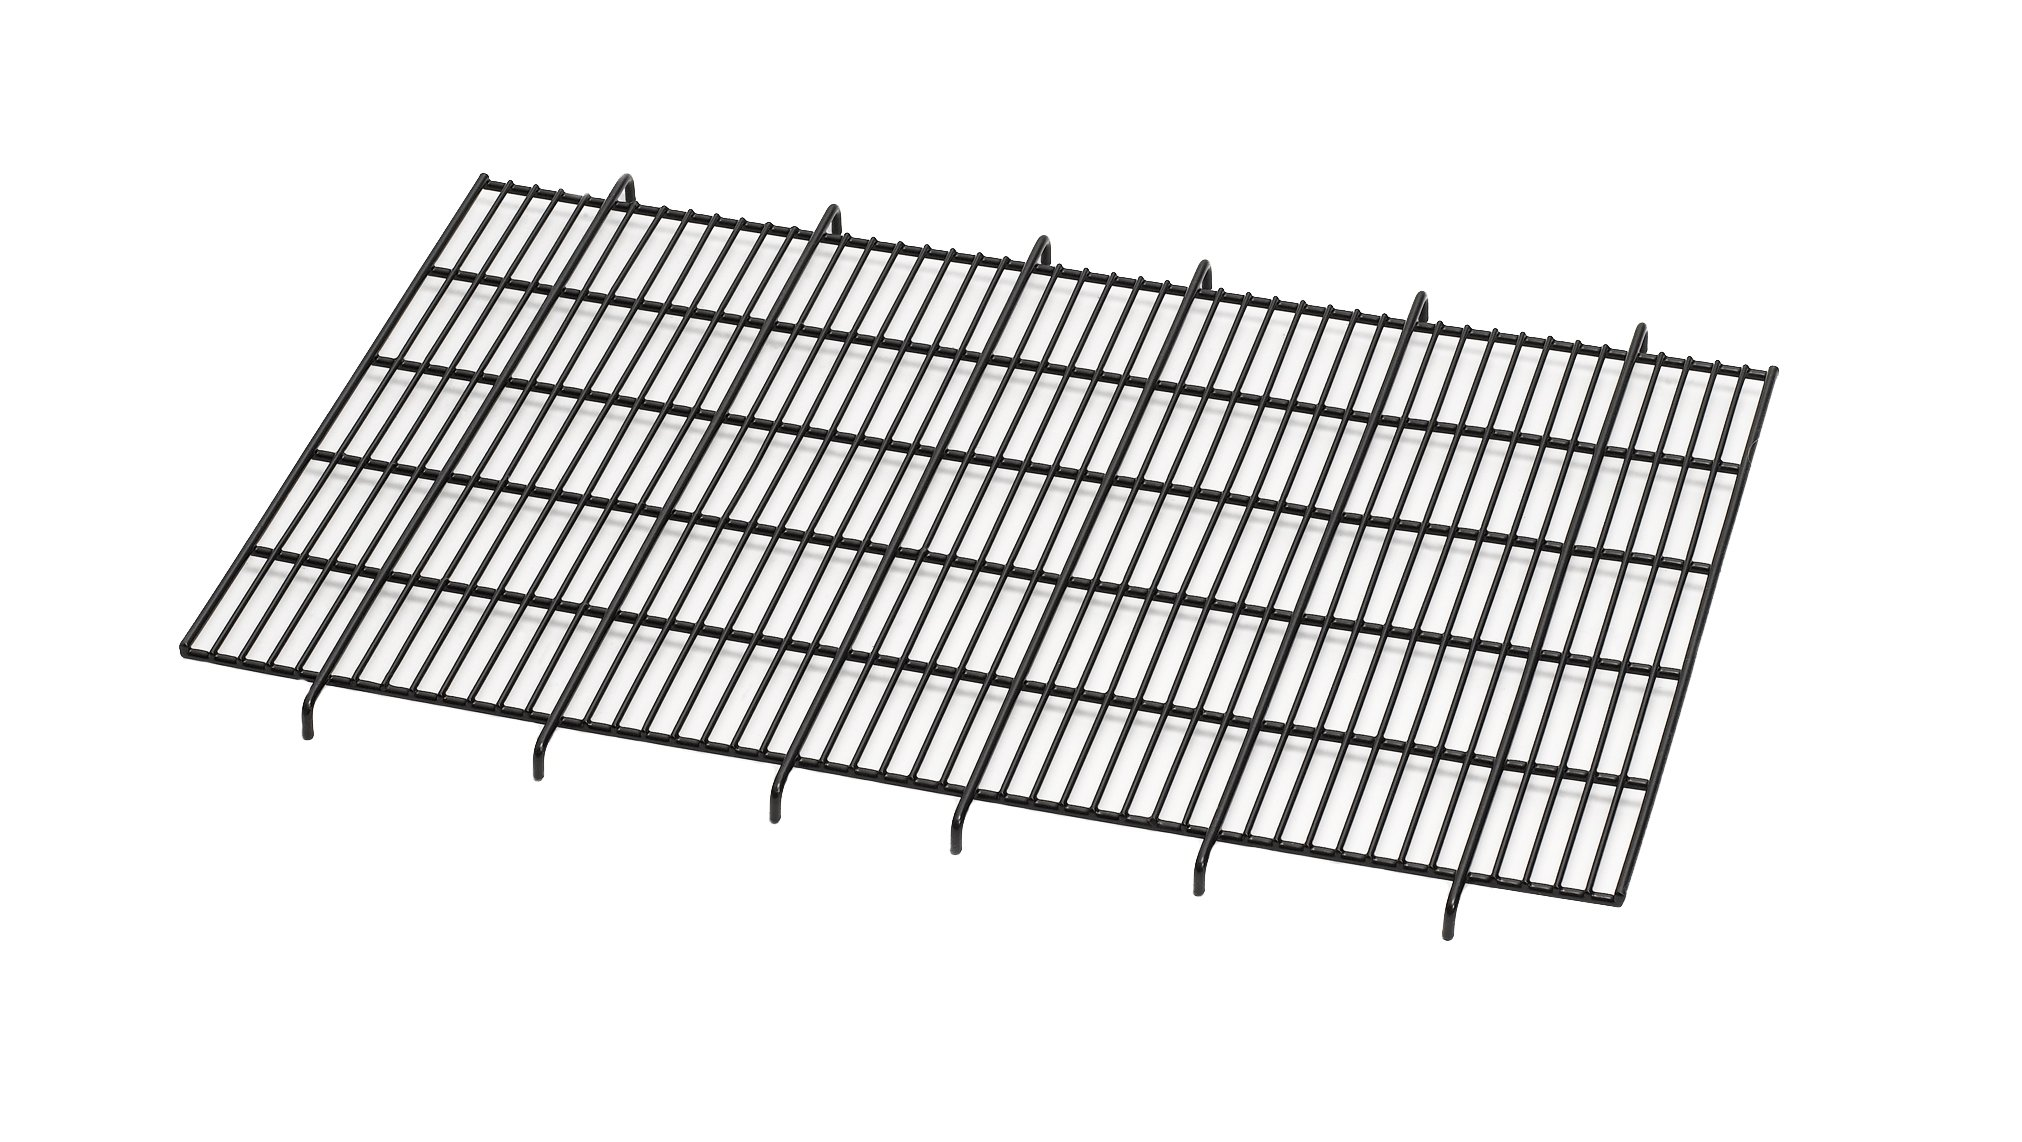 Floor Grid for Dog Crate | Elevated Floor Grid Fits MidWest Folding Metal Dog Crate Models 1530, 1530DD, 430, 430DD